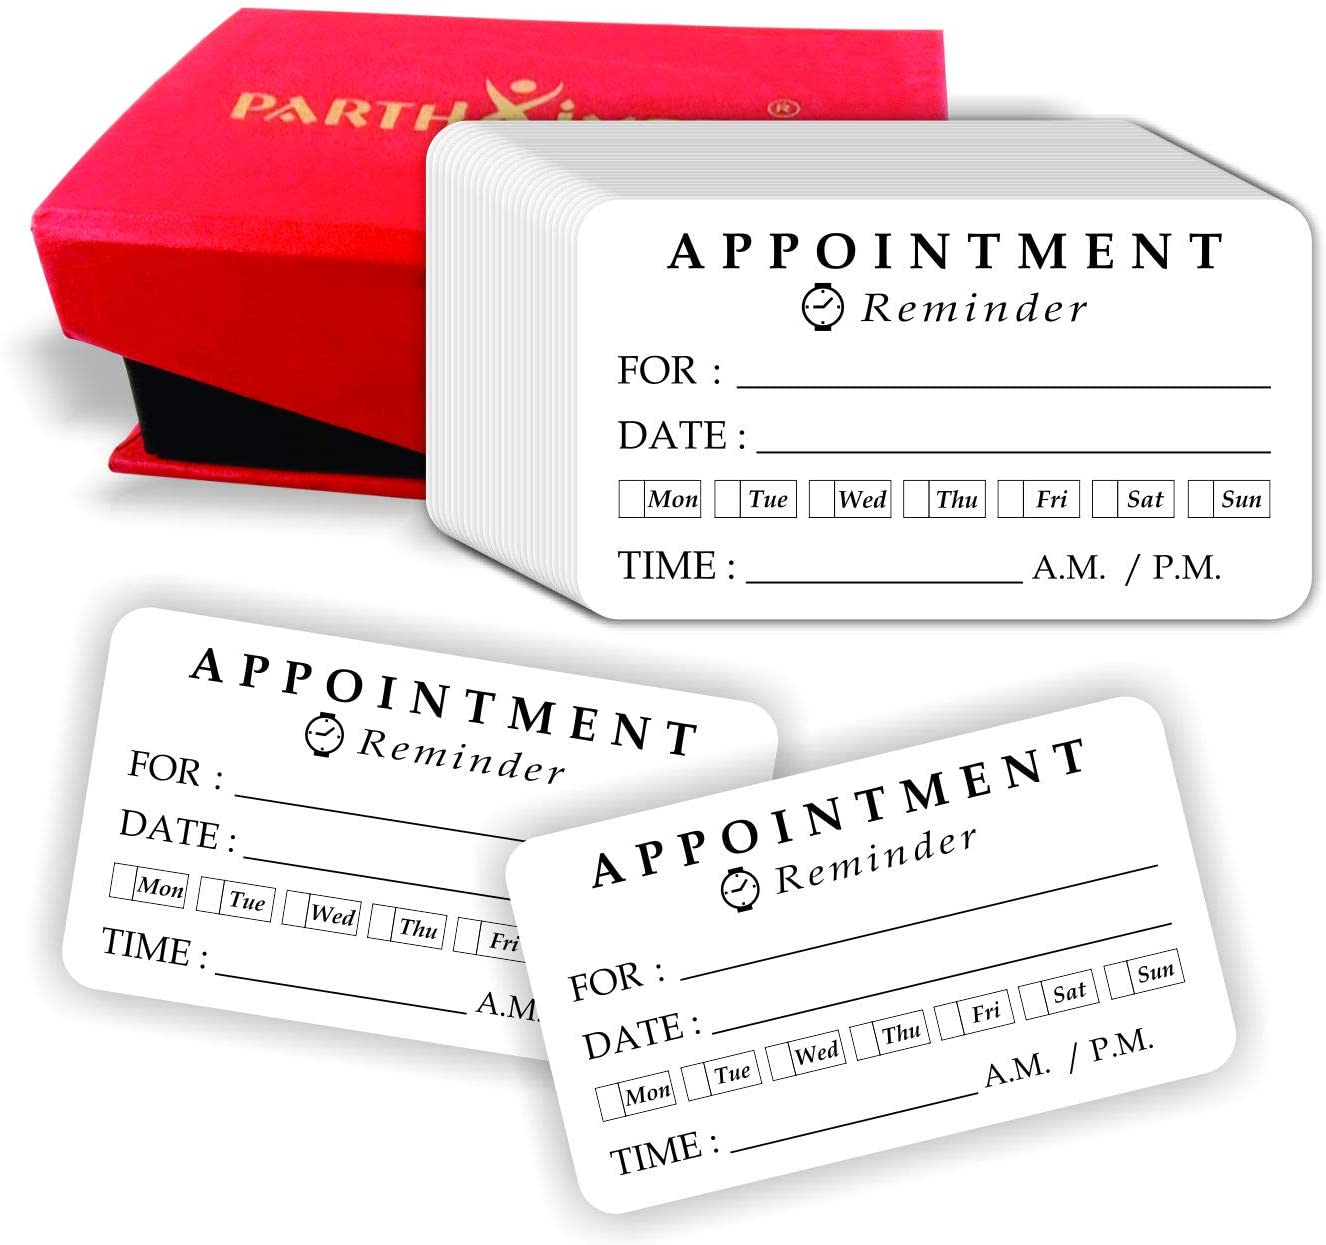 Appointment Reminder Cards - (Pack of 100) 3.5